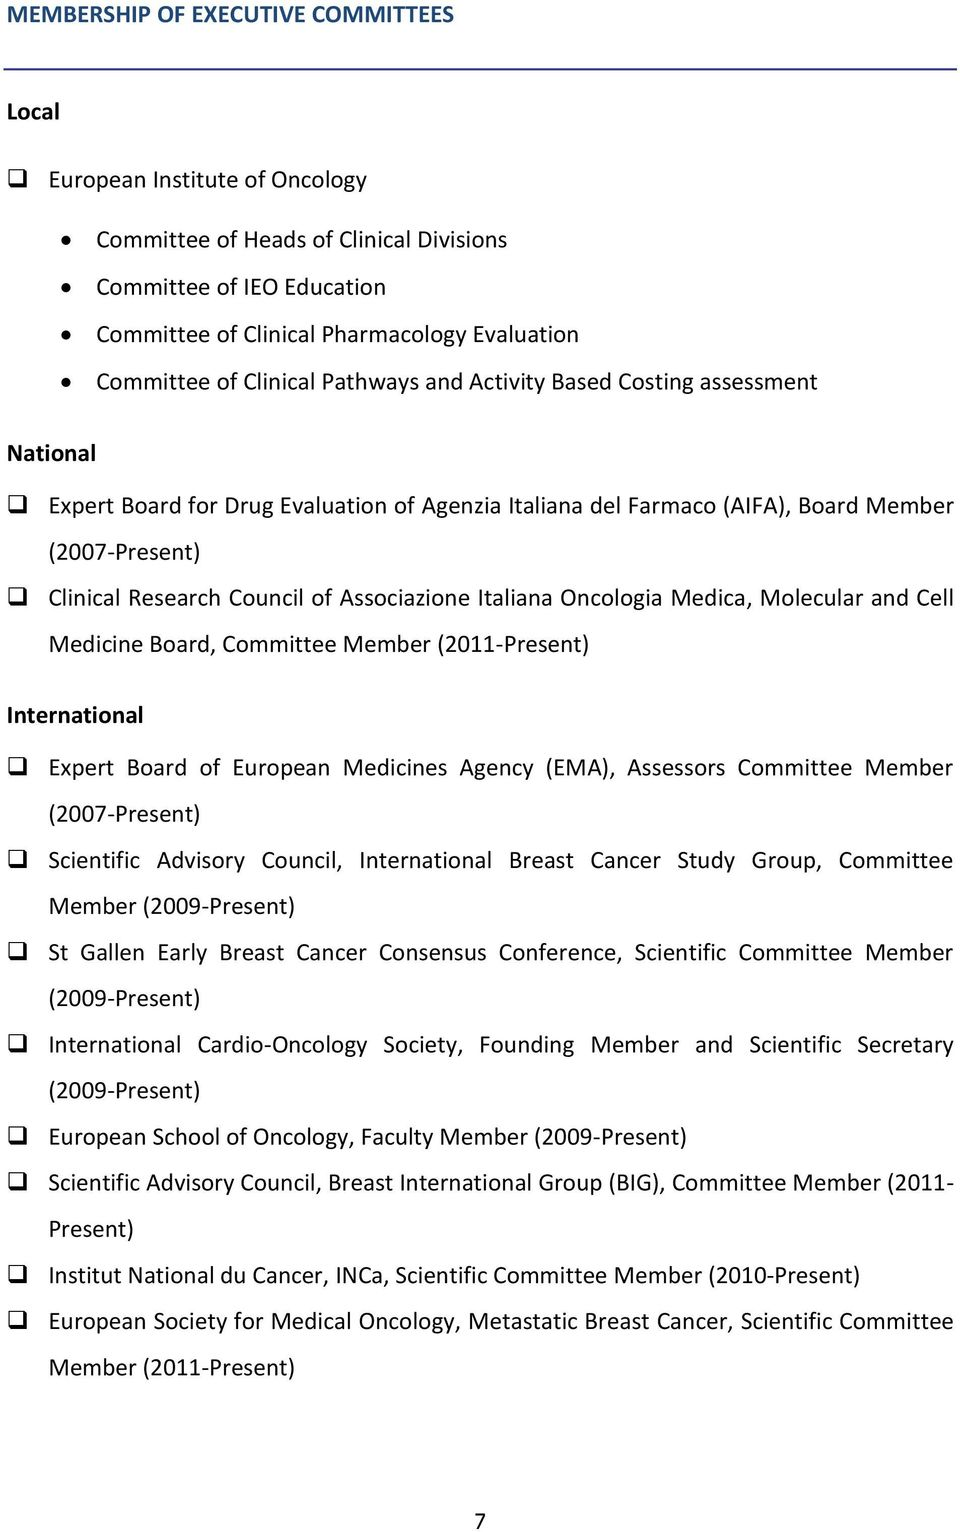 Associazione Italiana Oncologia Medica, Molecular and Cell Medicine Board, Committee Member (2011-Present) International Expert Board of European Medicines Agency (EMA), Assessors Committee Member